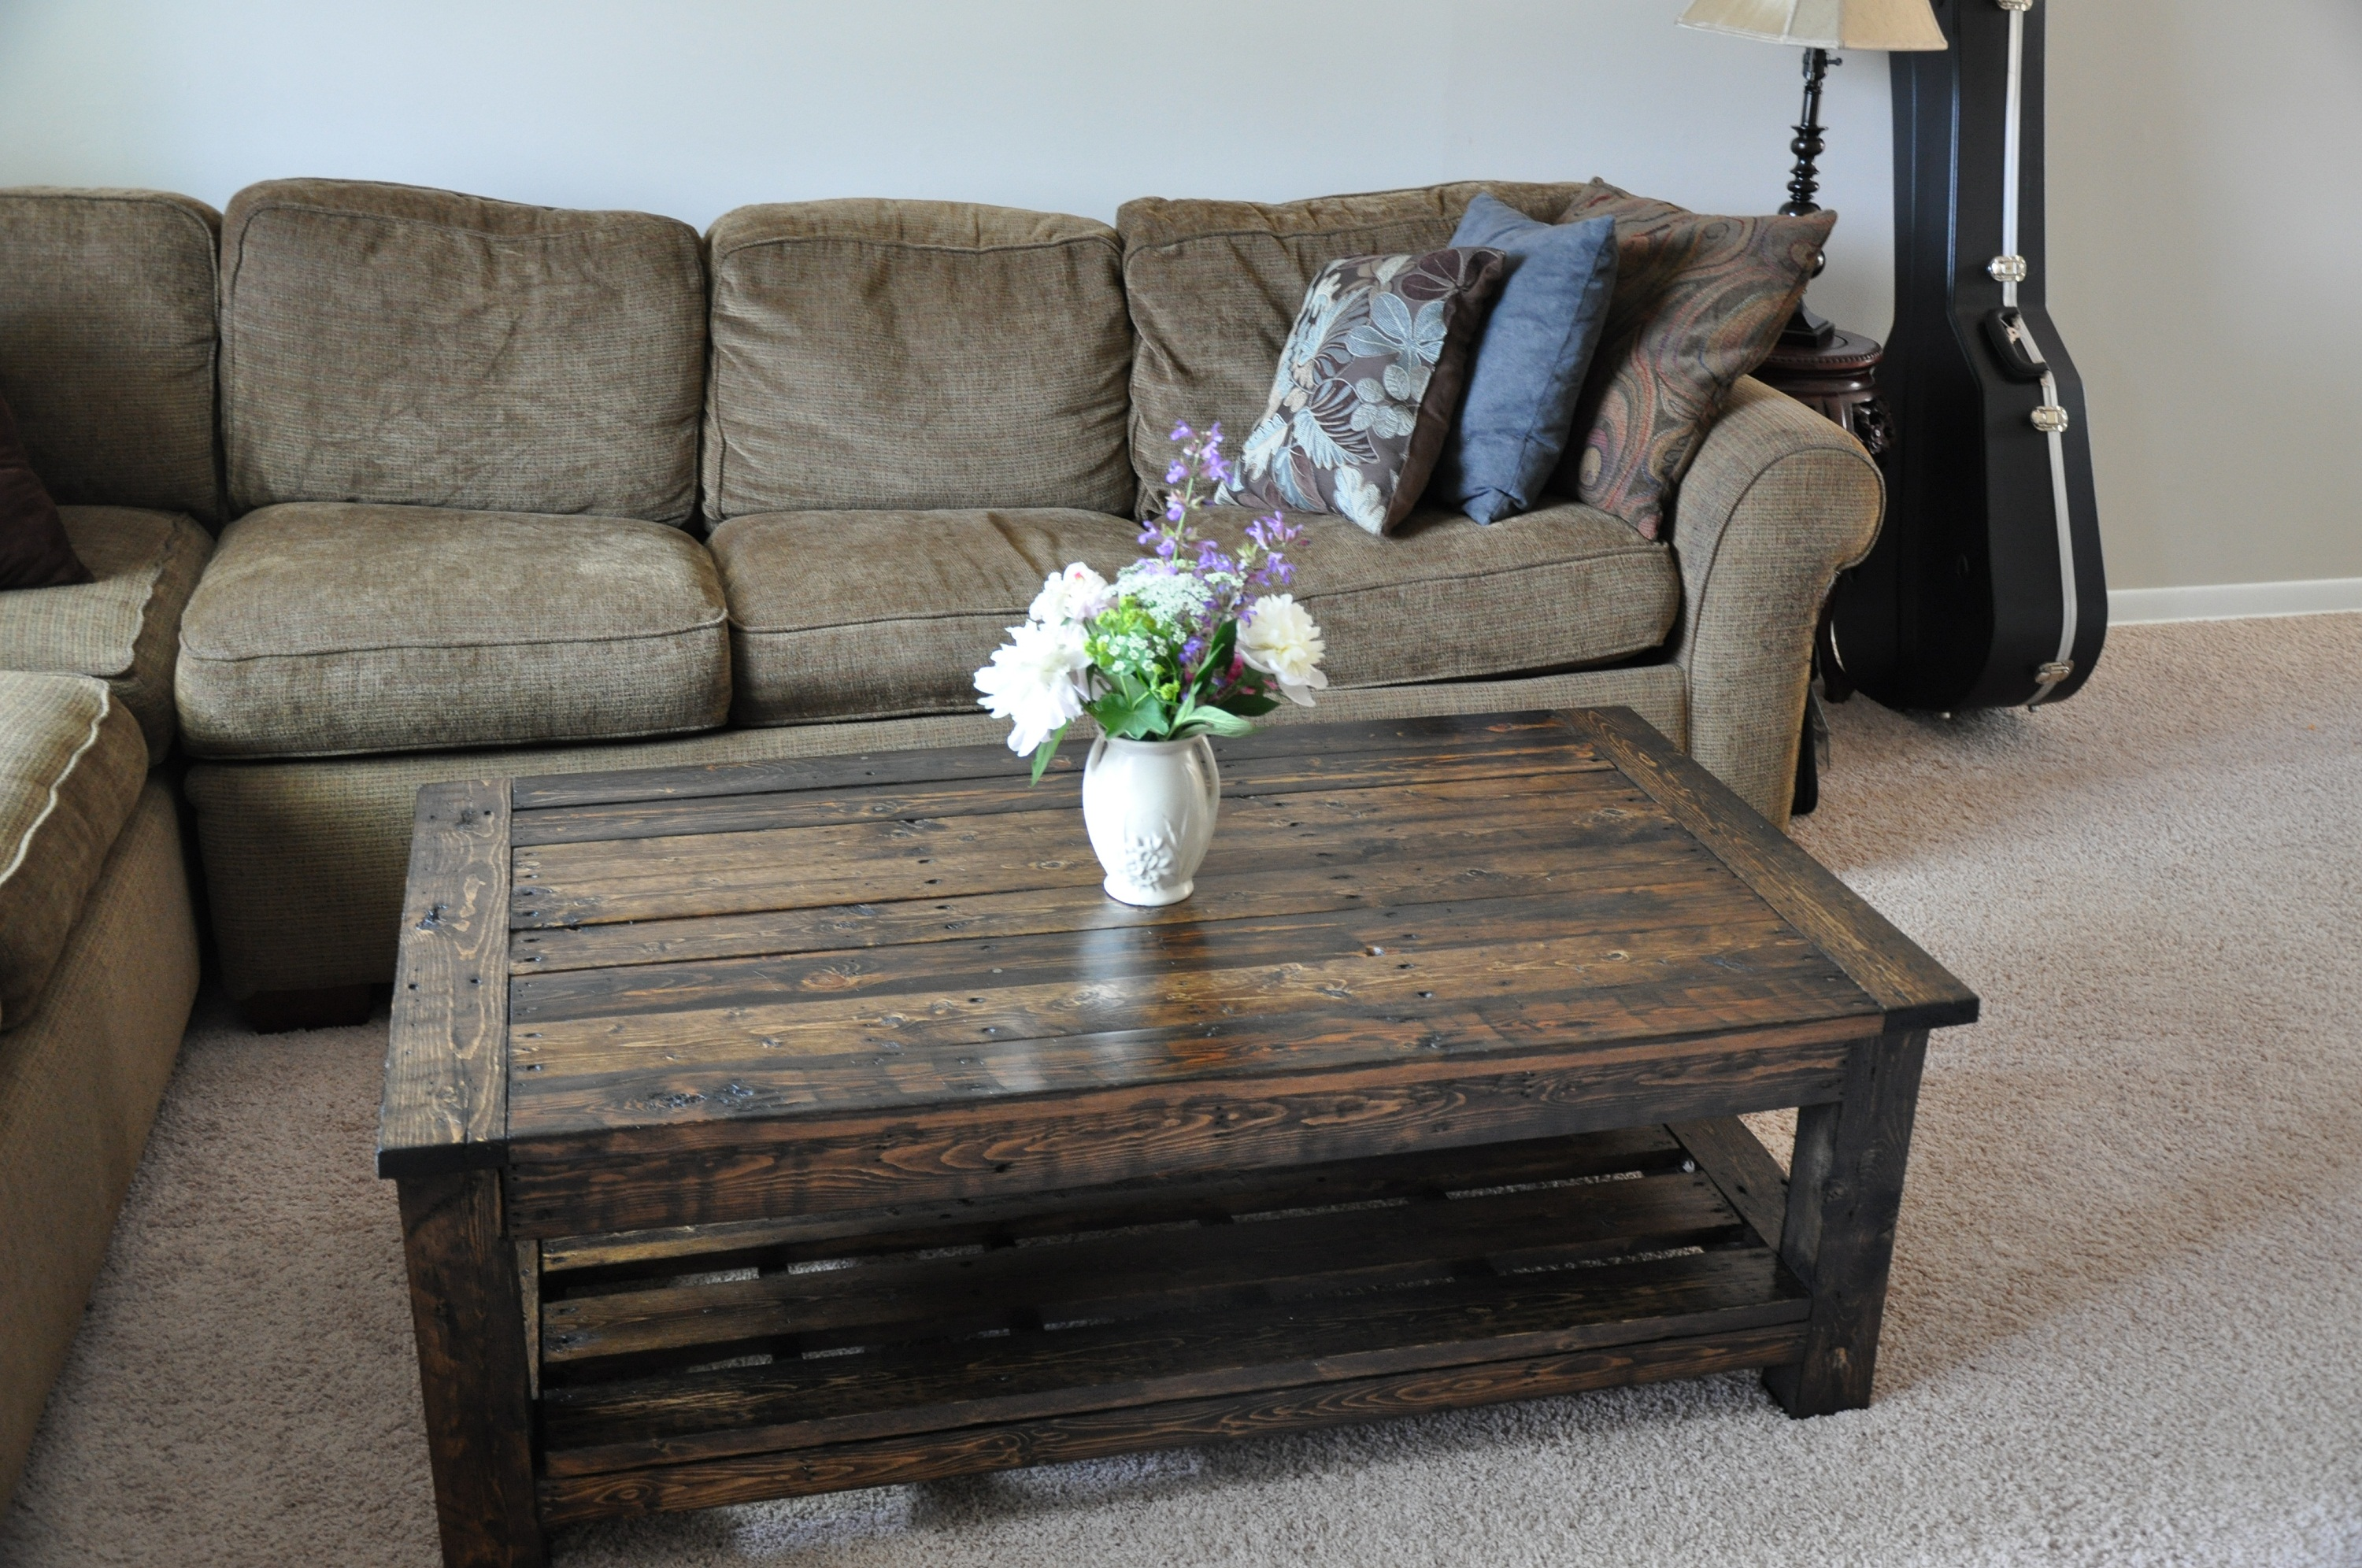 Beautiful coffee table made from pallets